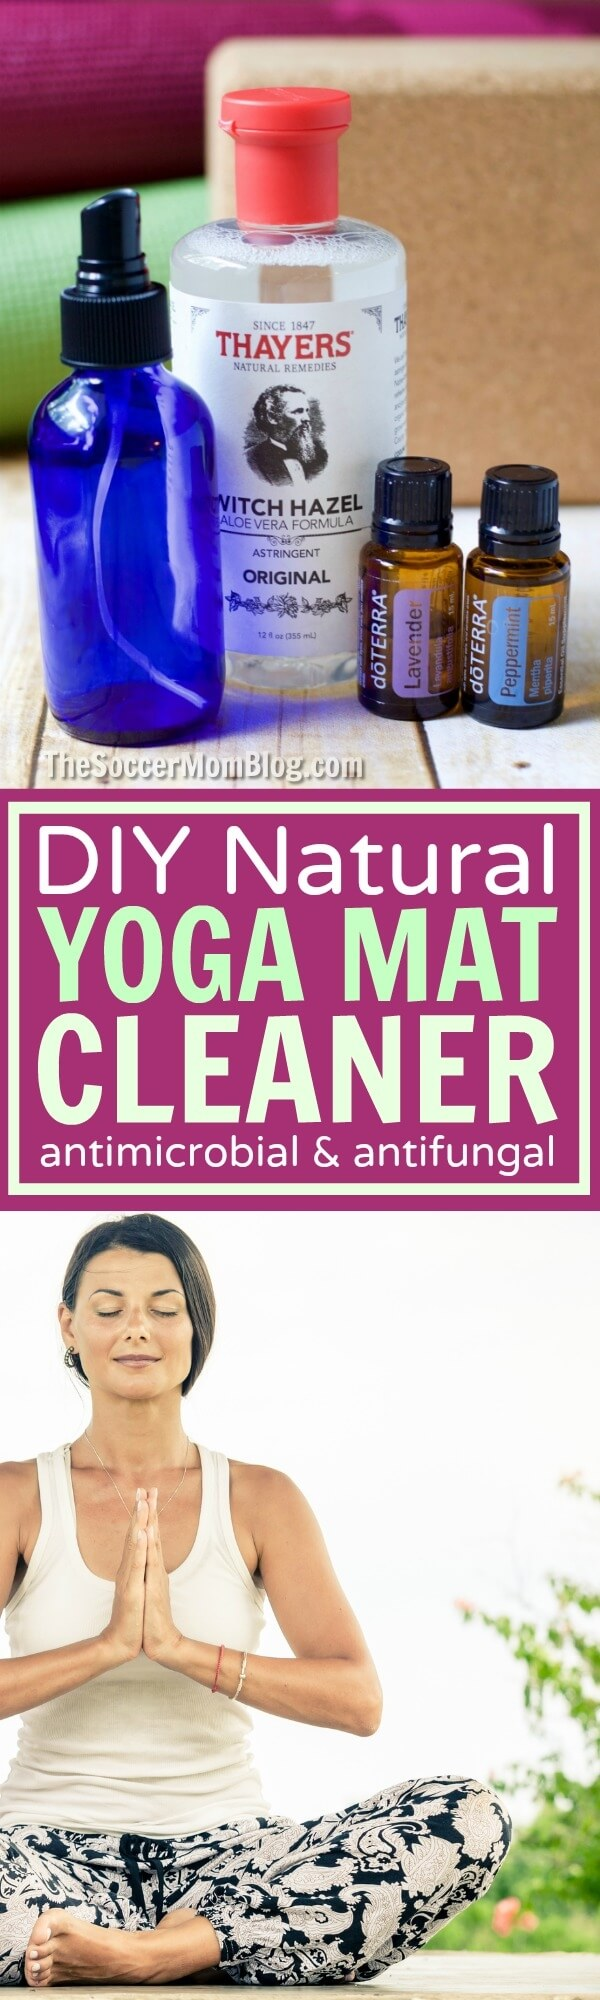 Save money and extend the life of your yoga equipment with this homemade all-natural yoga mat cleaner. Easy to make, antibacterial & anti fungal.